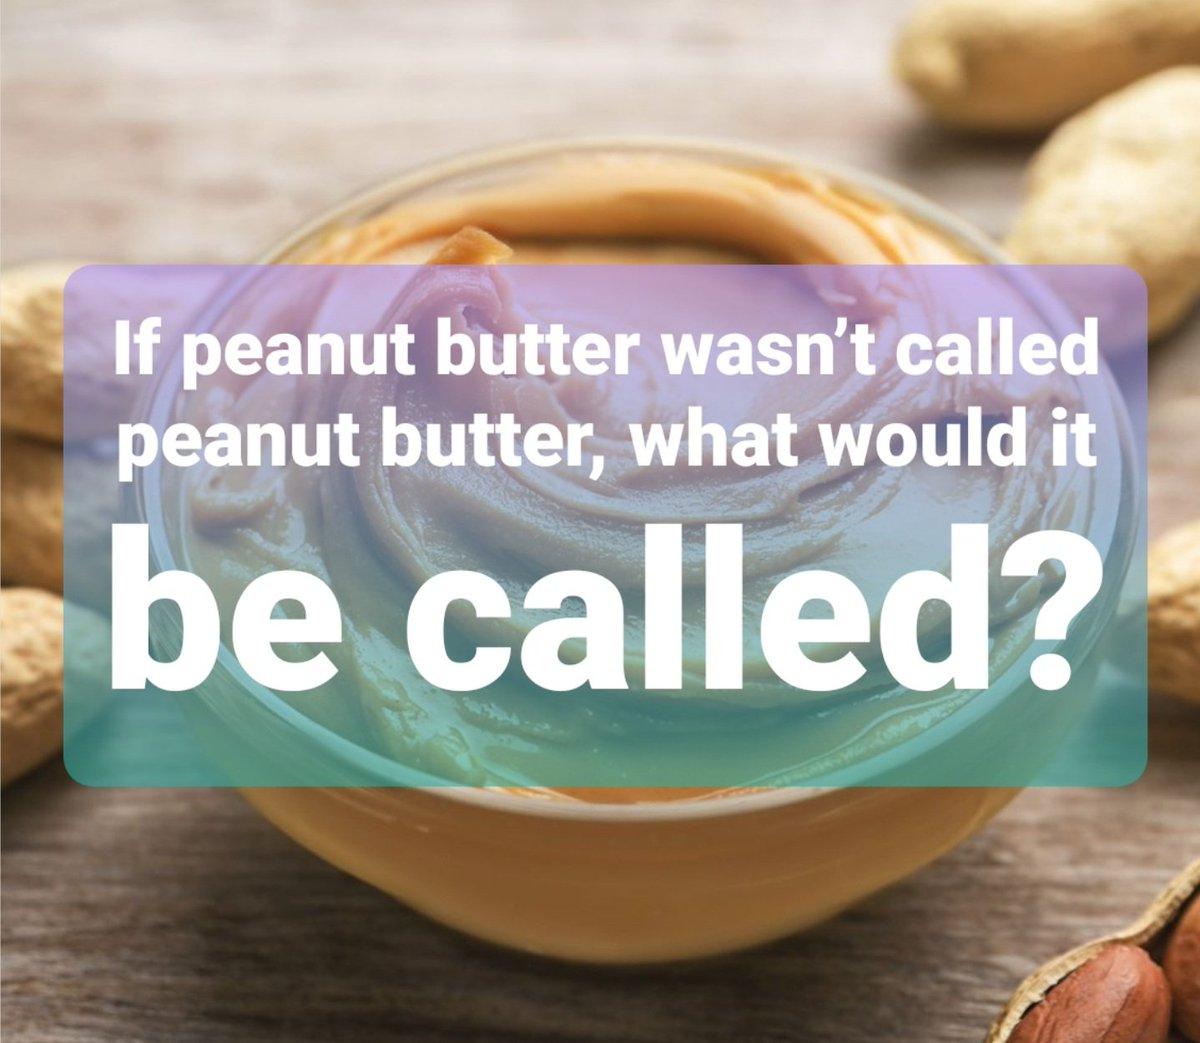 #CAMFers happy #tuesday todays #QuestionOfTheDay is for all you #foodies lets have some #fun with this one.  I would say it would be called Nut Paste. #Questionbox #question #peanut #peanutbutter #food #fun #enjoy #TacoTuesday #tuesdayvibe #tuesdaymotivations